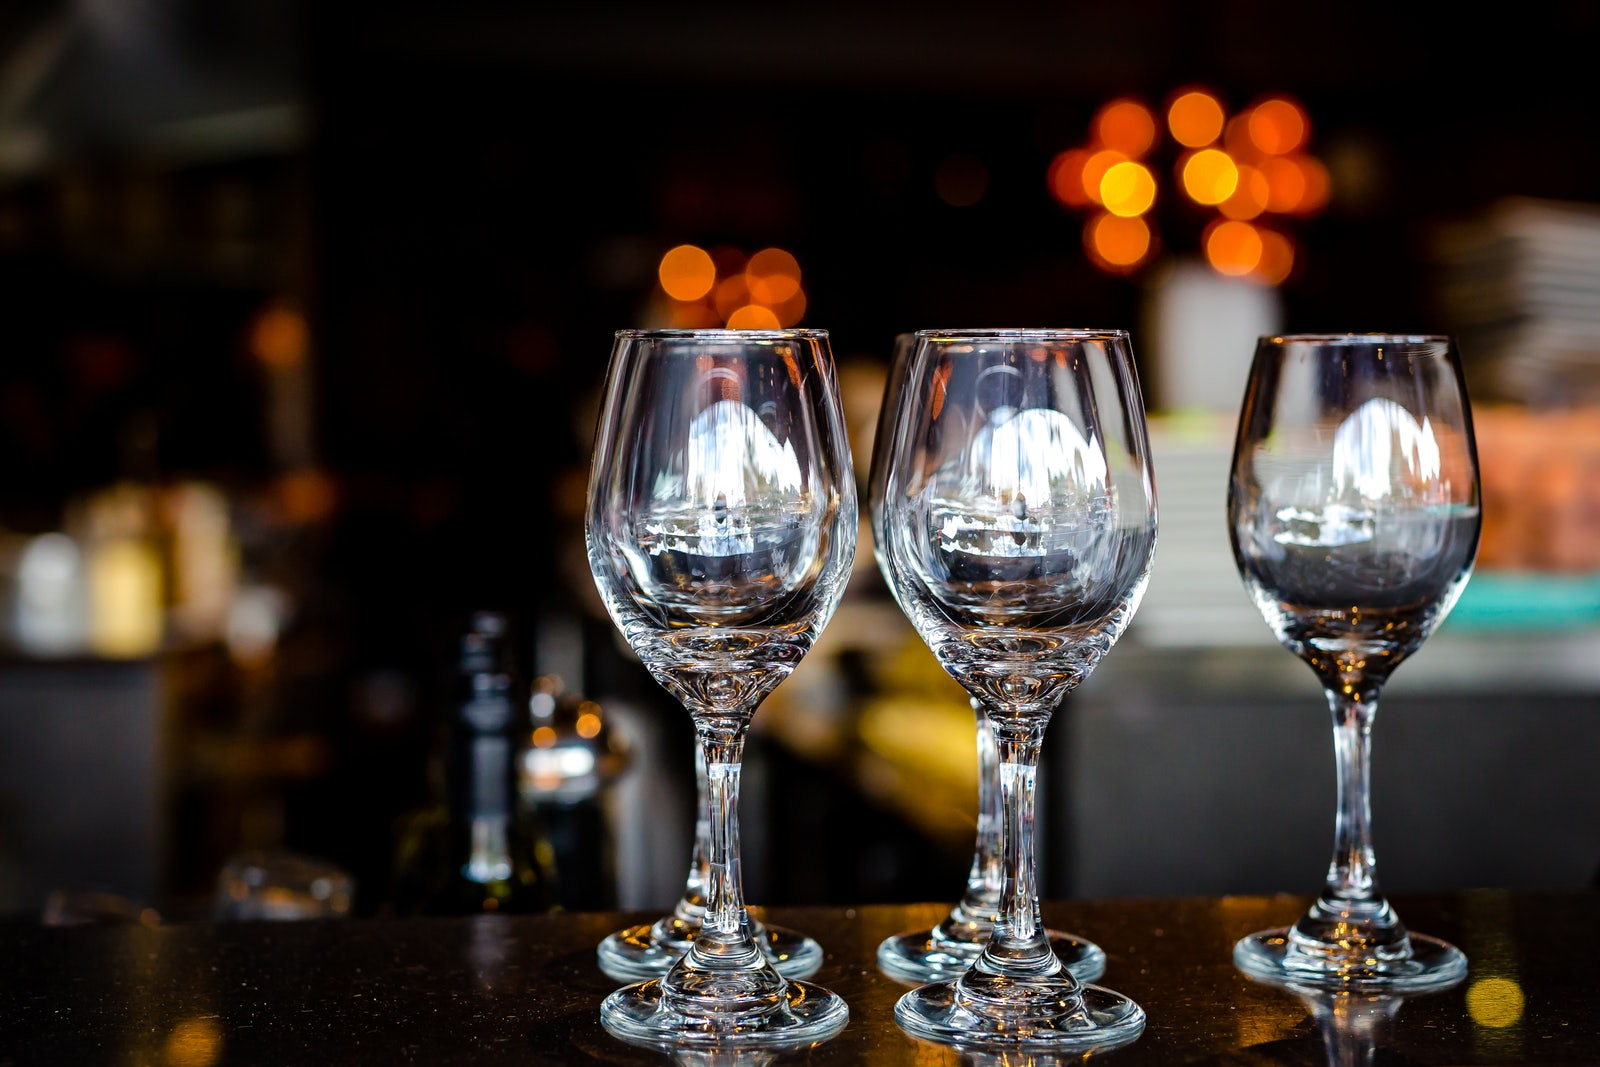 A picture of wine glasses from Cambridge Hotels restaurant in Surry Hills